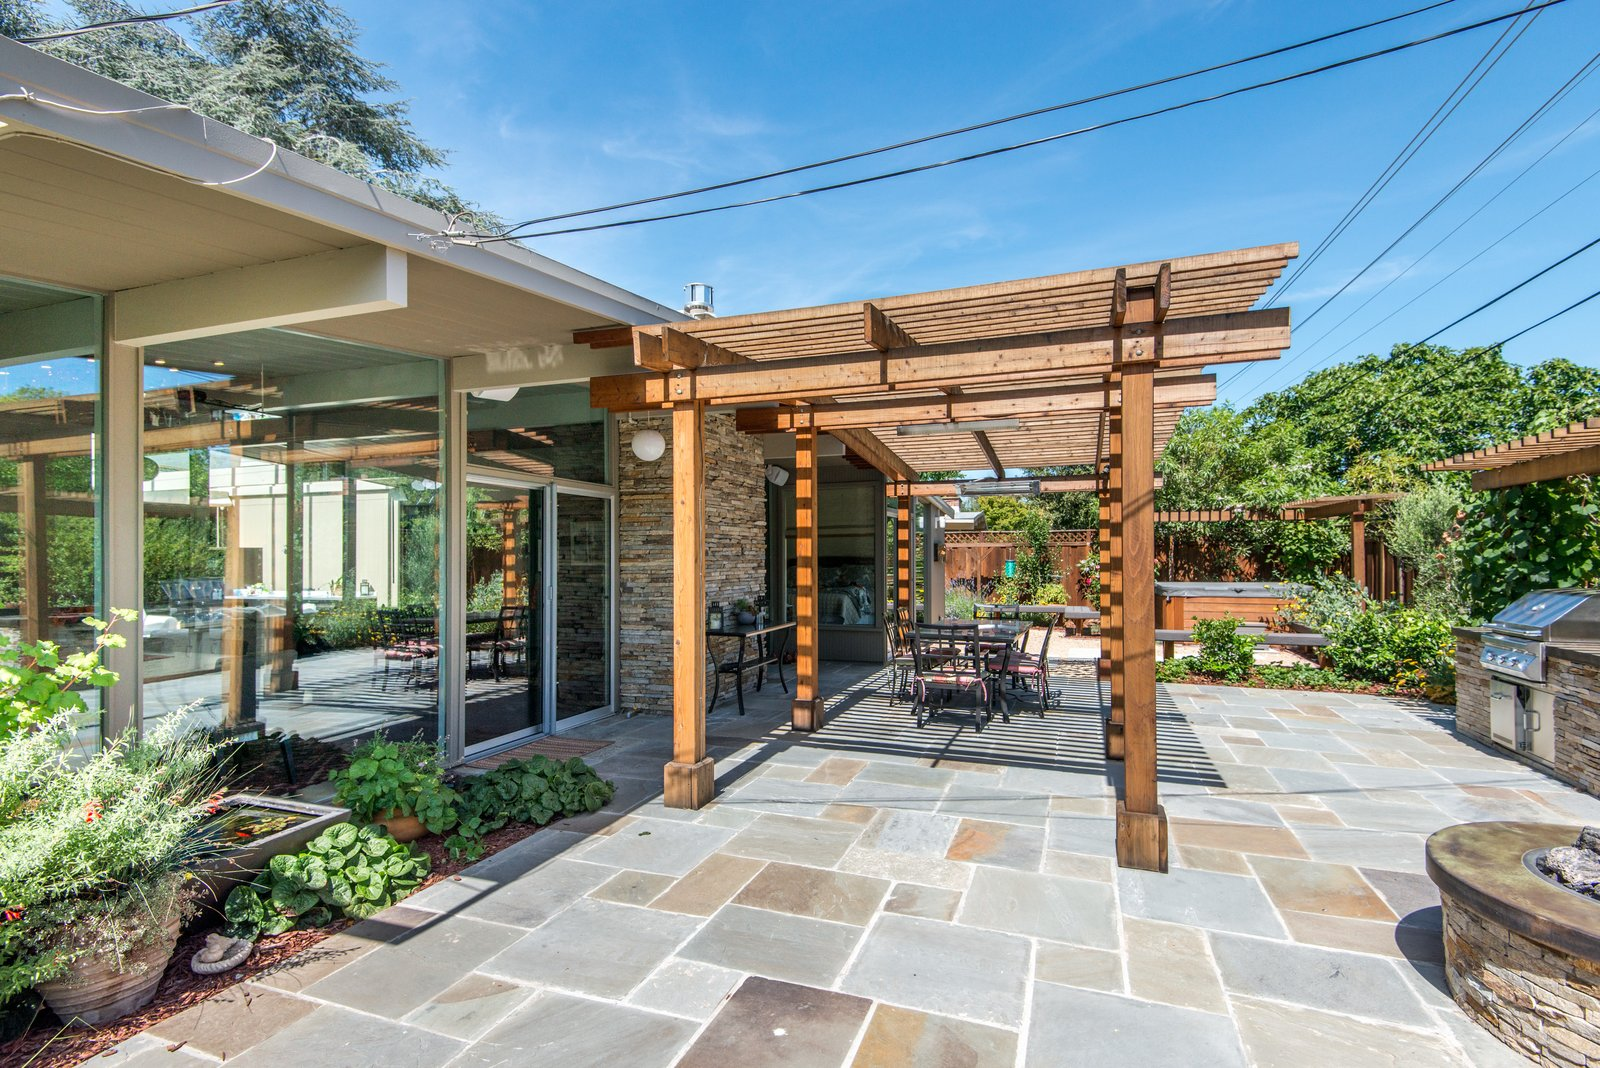 Outdoor, Wood Patio, Porch, Deck, Back Yard, Stone Patio, Porch, Deck, Landscape Lighting, Flowers, Hardscapes, and Hot Tub Pools, Tubs, Shower An outdoor dream - serene and functional for entertaining guests, or just relaxing  Sunnyvale Eichler Remodel